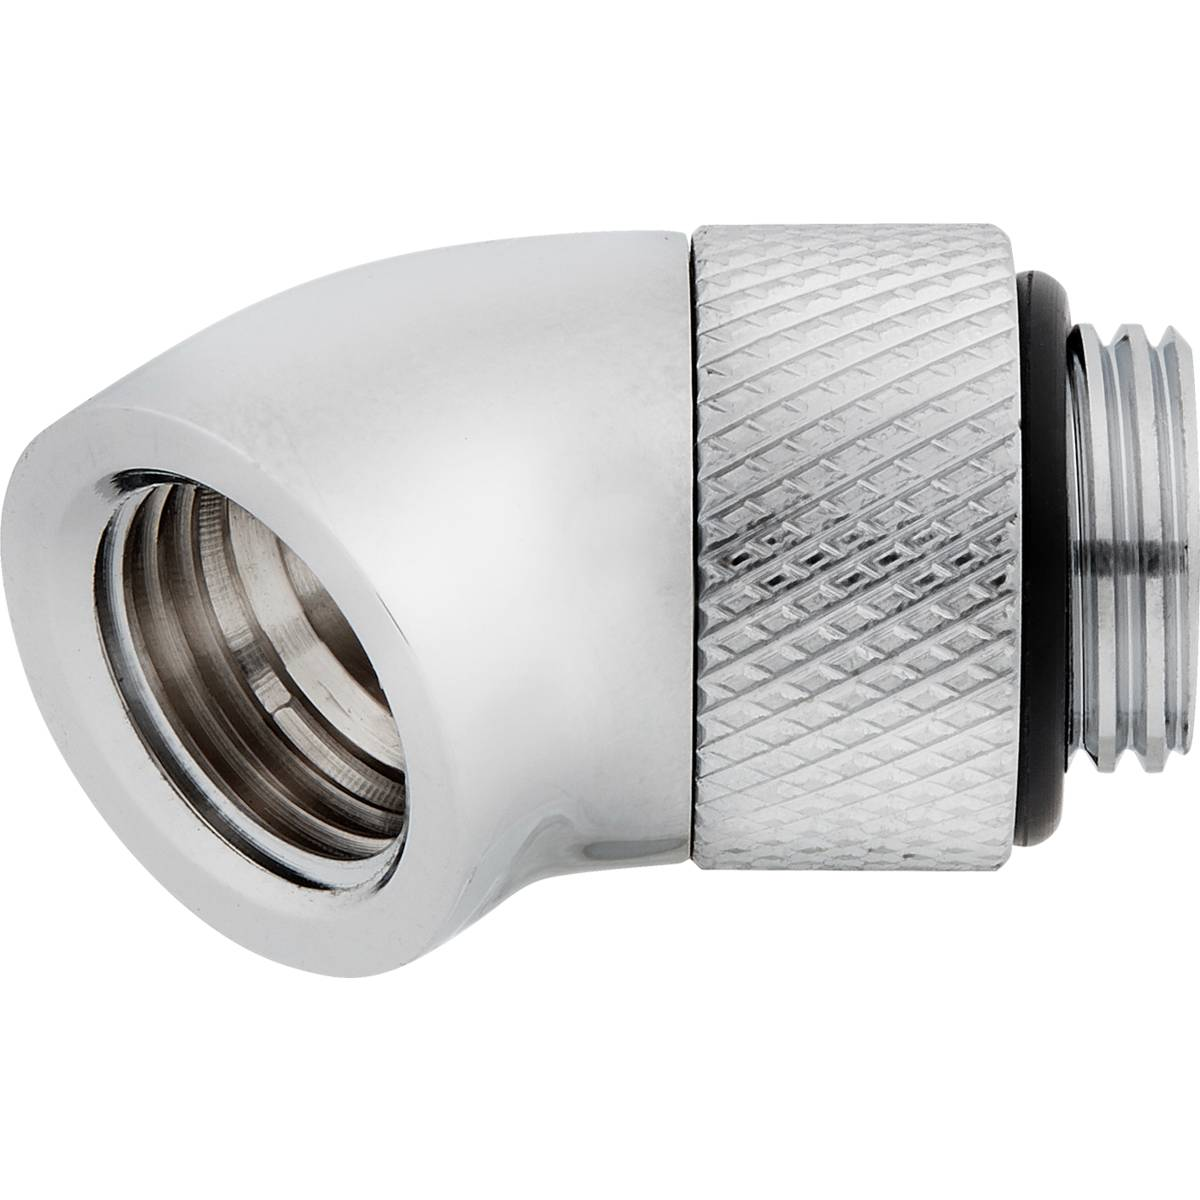 CORSAIR Hydro X Series 45° Rotary Adapter Twin Pack - Chrome